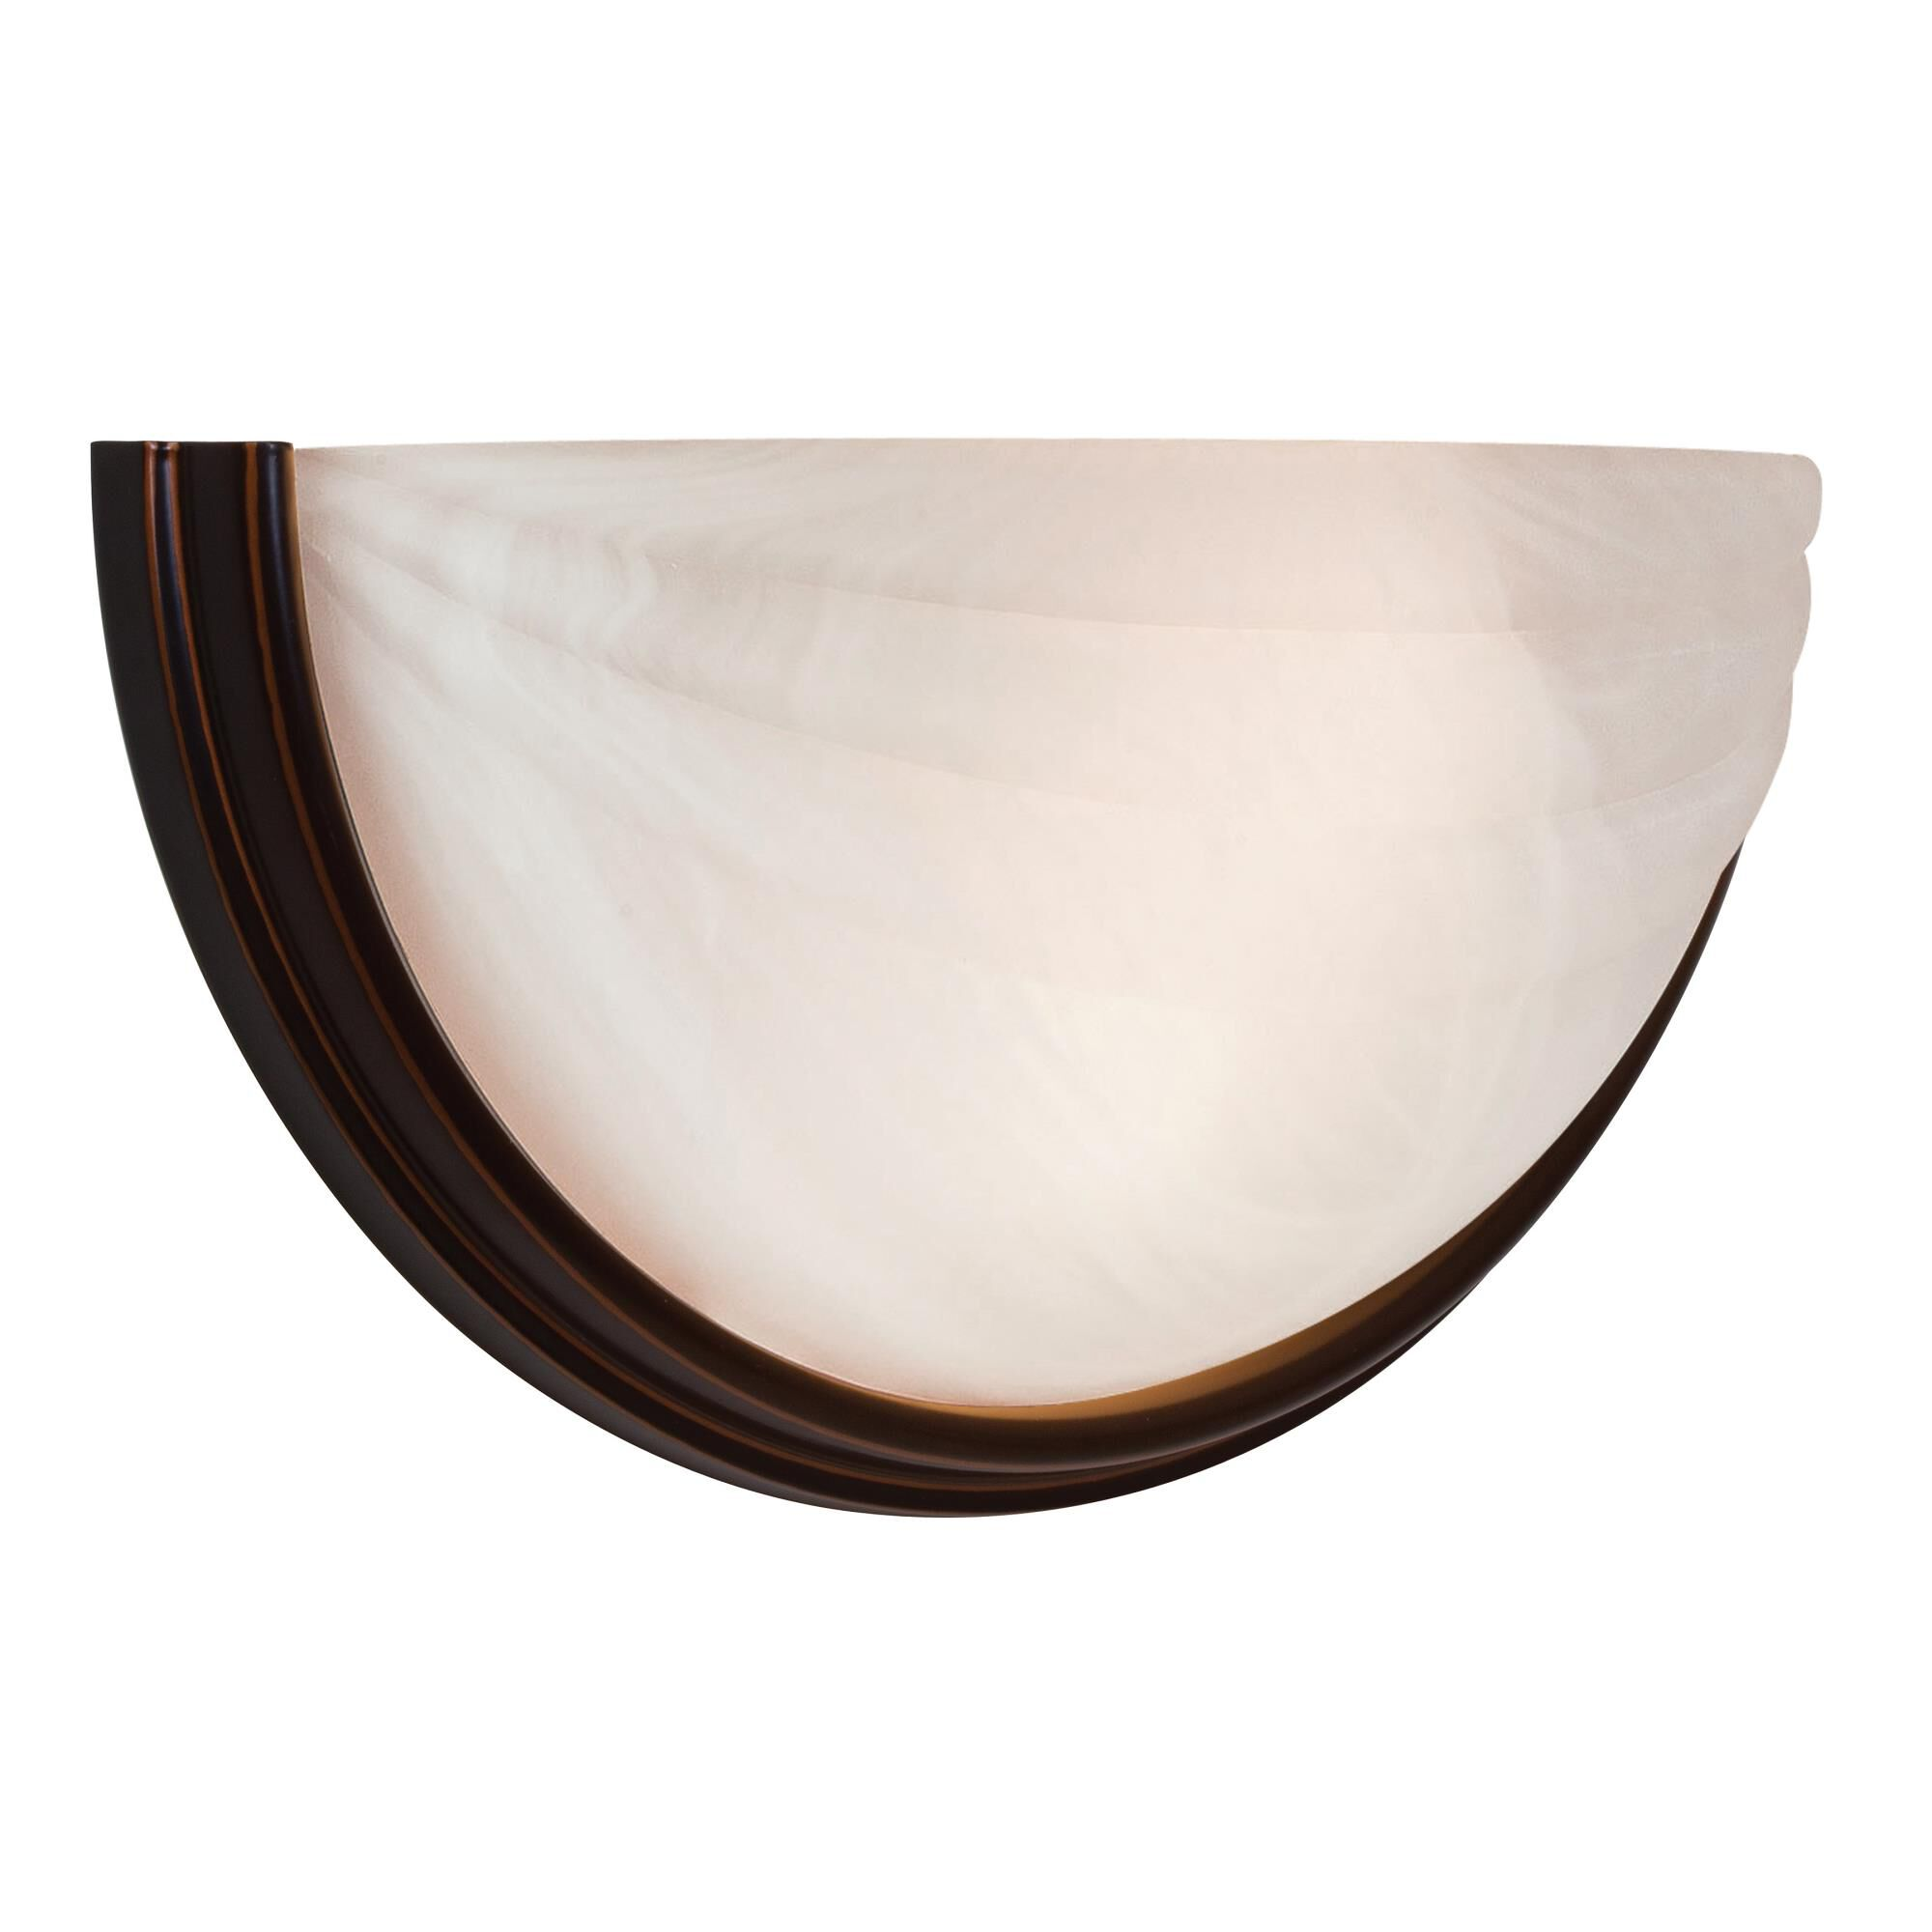 Access Lighting Crest 13 Inch LED Wall Sconce Crest 20635LEDDLP ORBALB Transitional